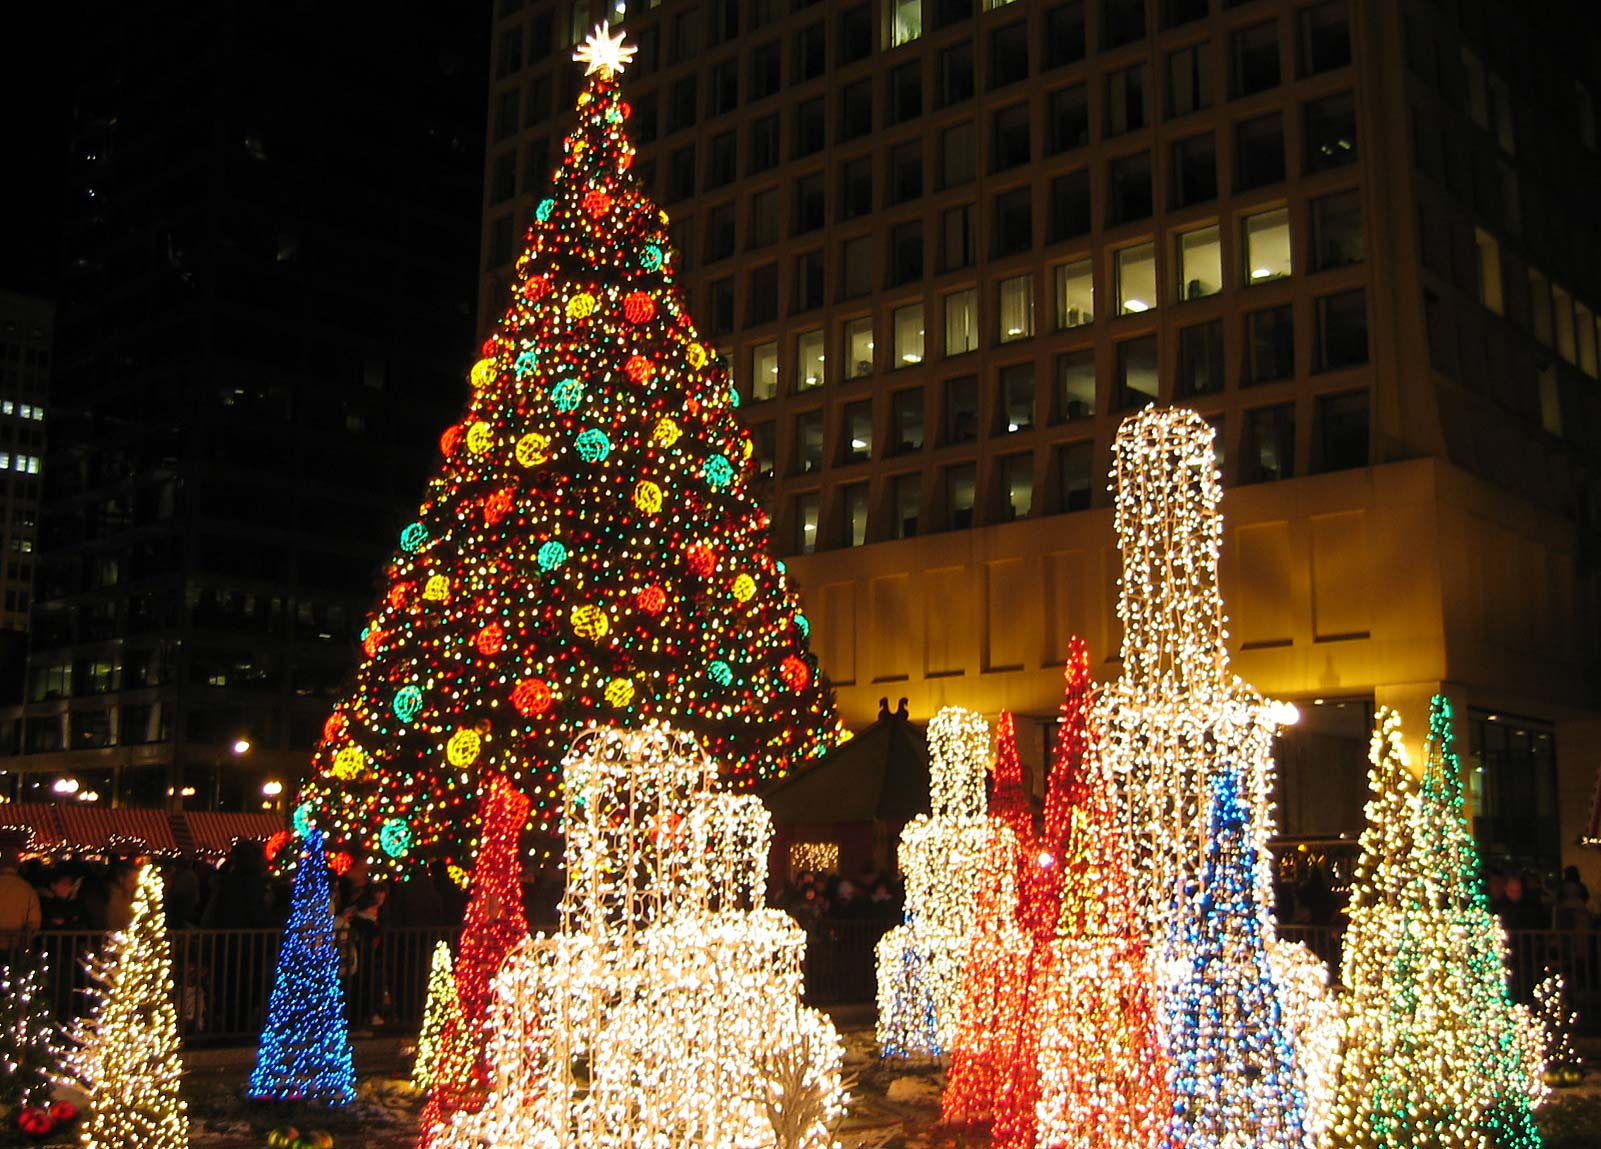 Chicago Christmas Market 2019 Christmas in Chicago 2019   Chicago Christmas Market